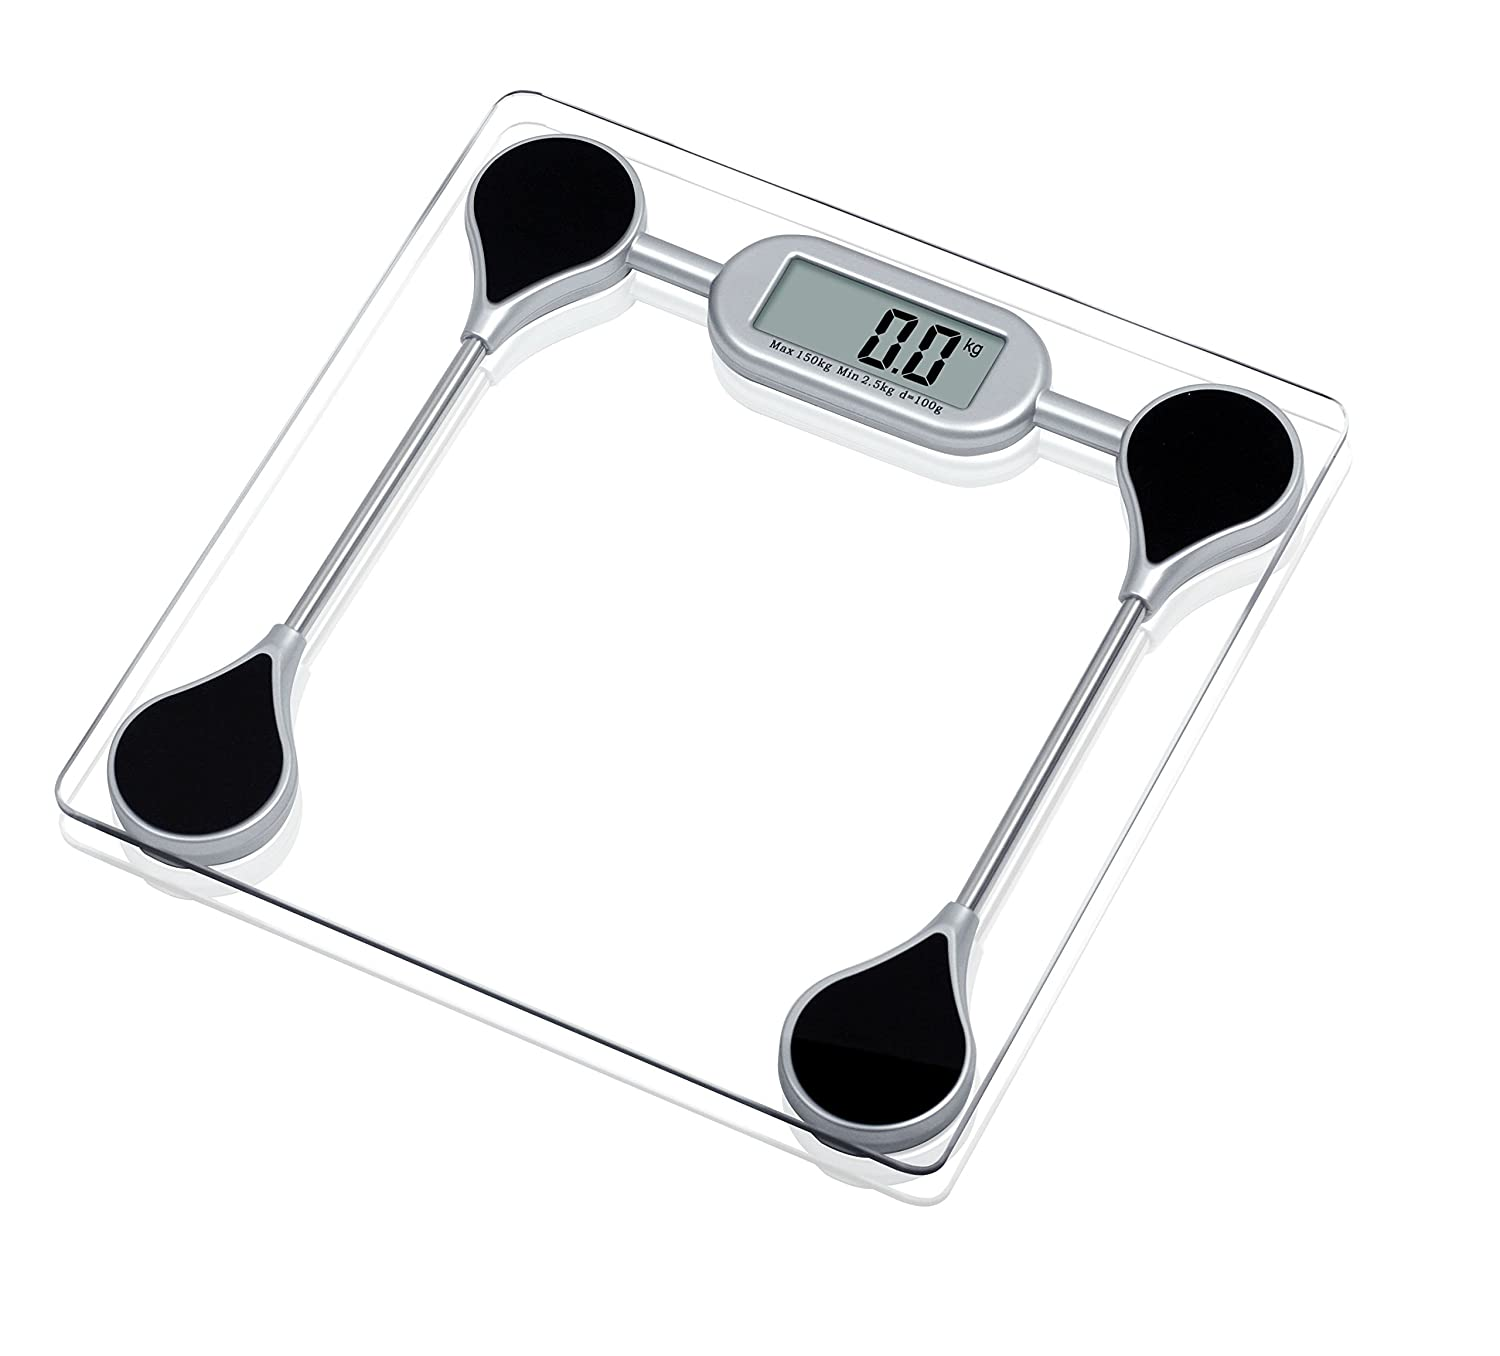 Venus Digital Body Weight Personal Weighing Scale